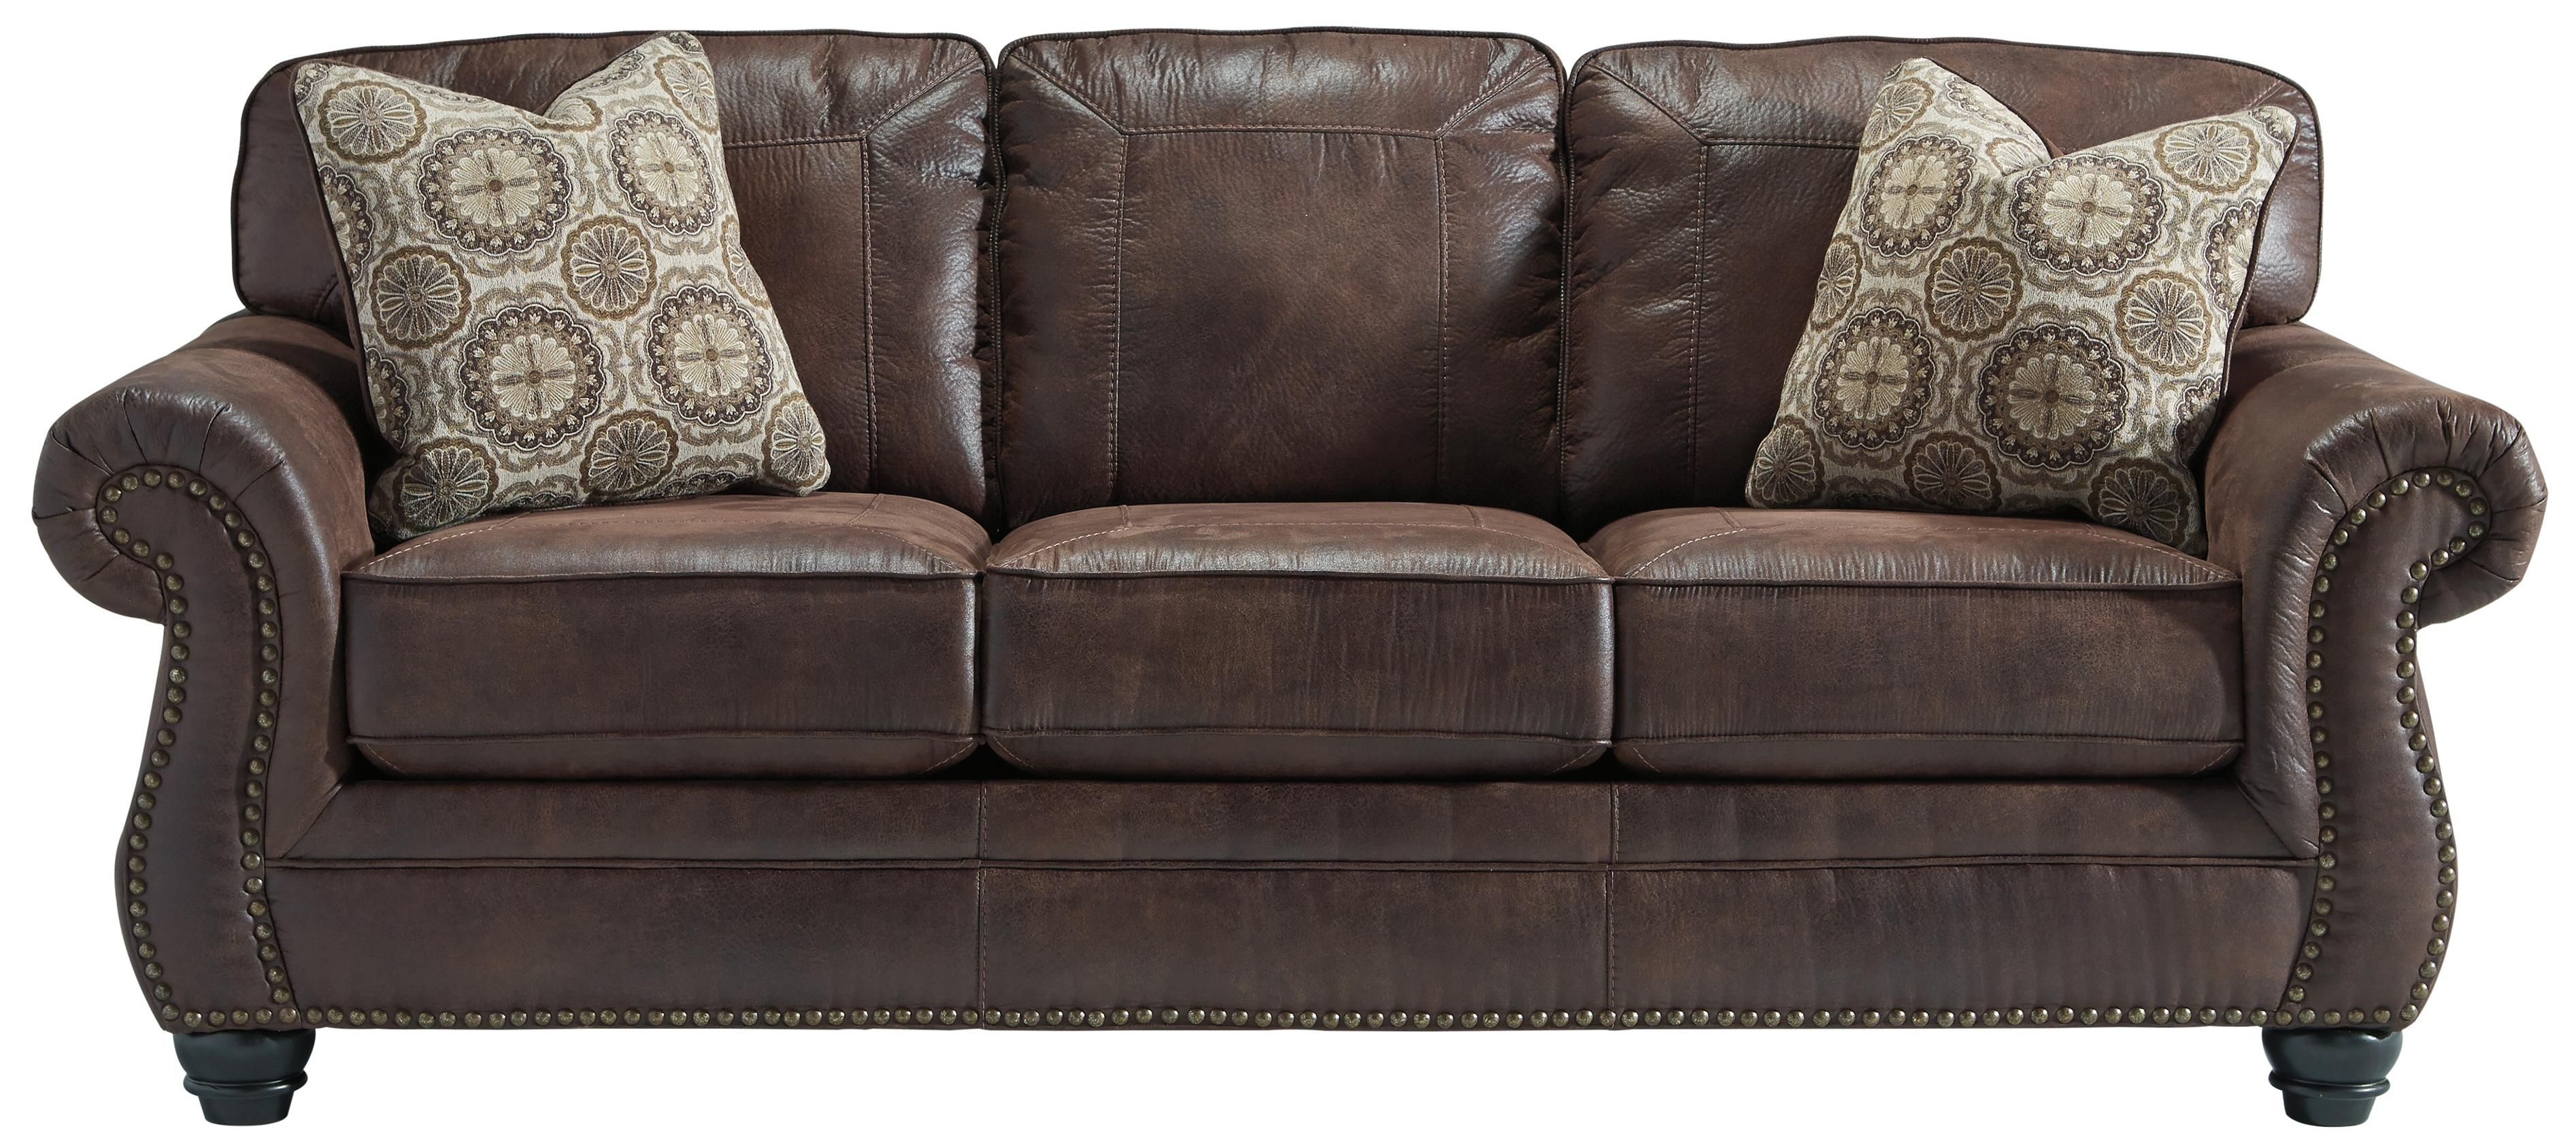 Breville Faux Leather Sofa with Rolled Arms and Nailhead